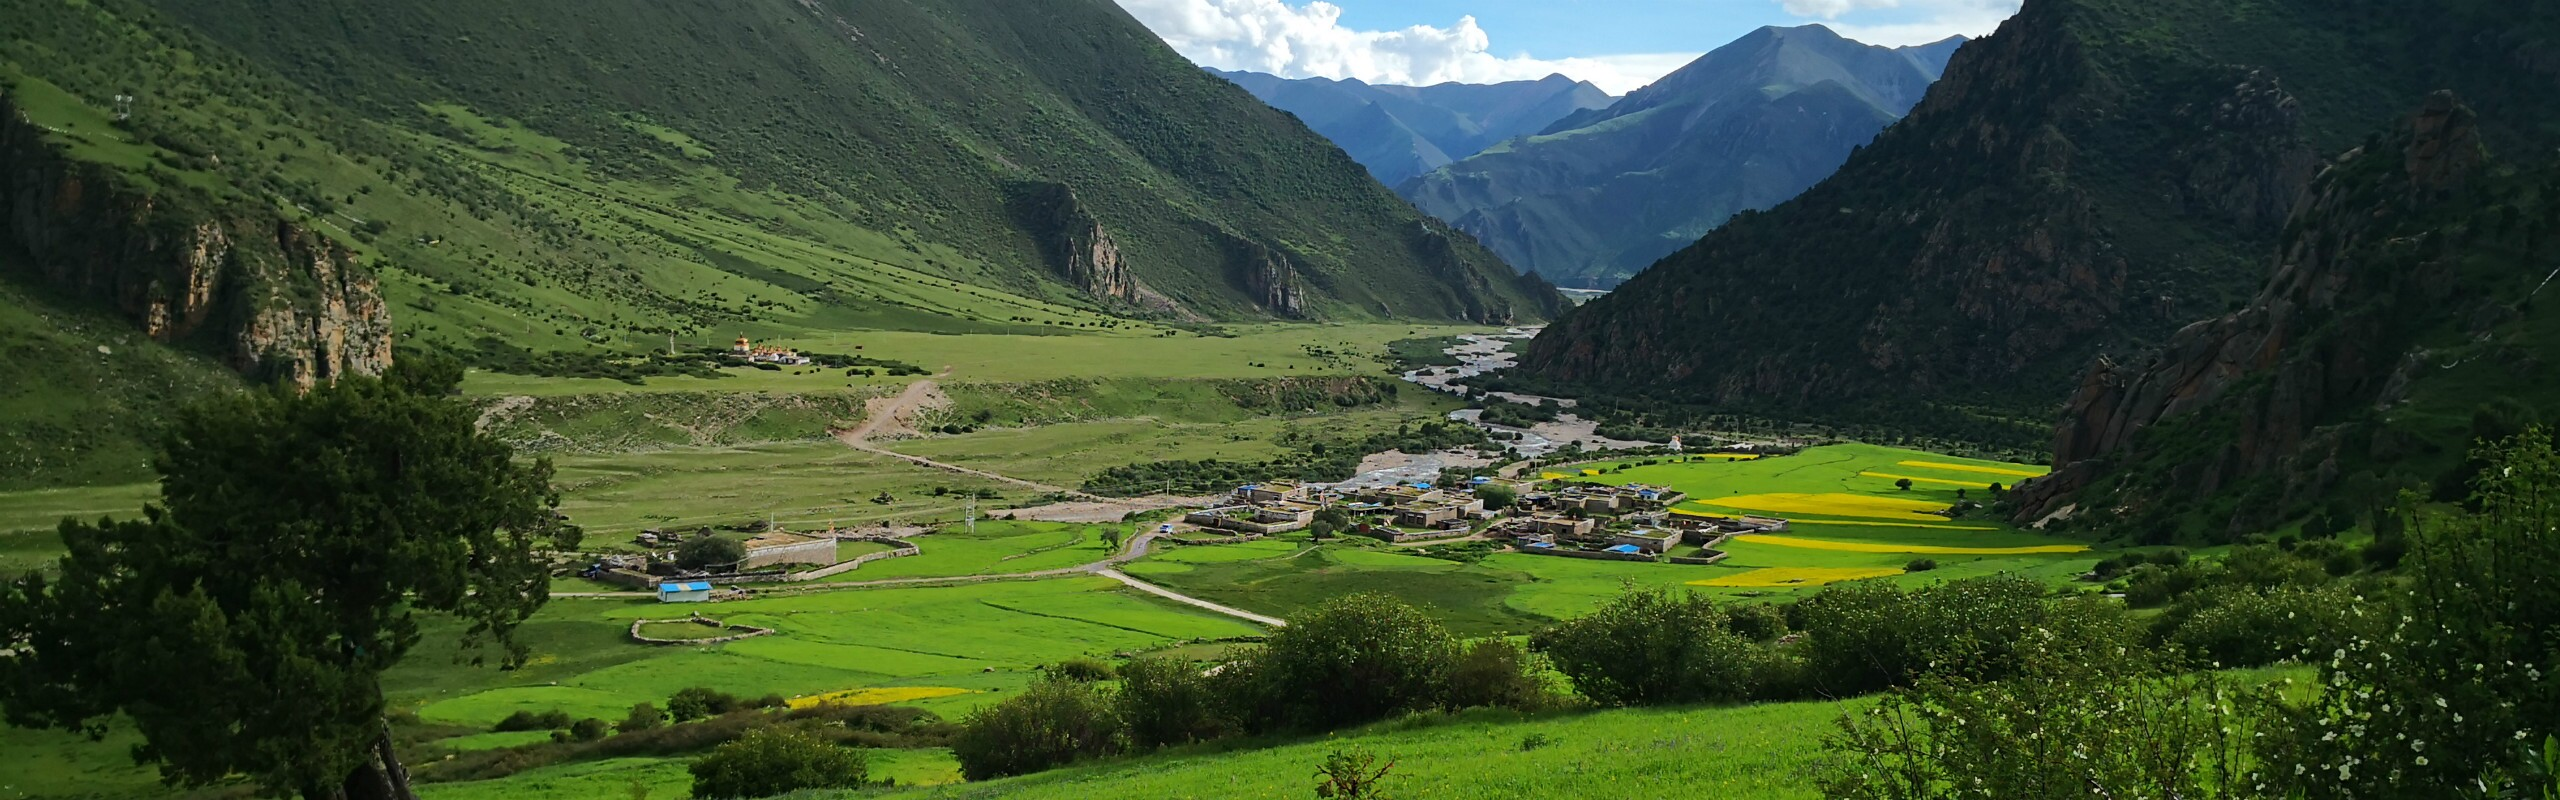 7-Day Tibet Tour including Trekking and Camping